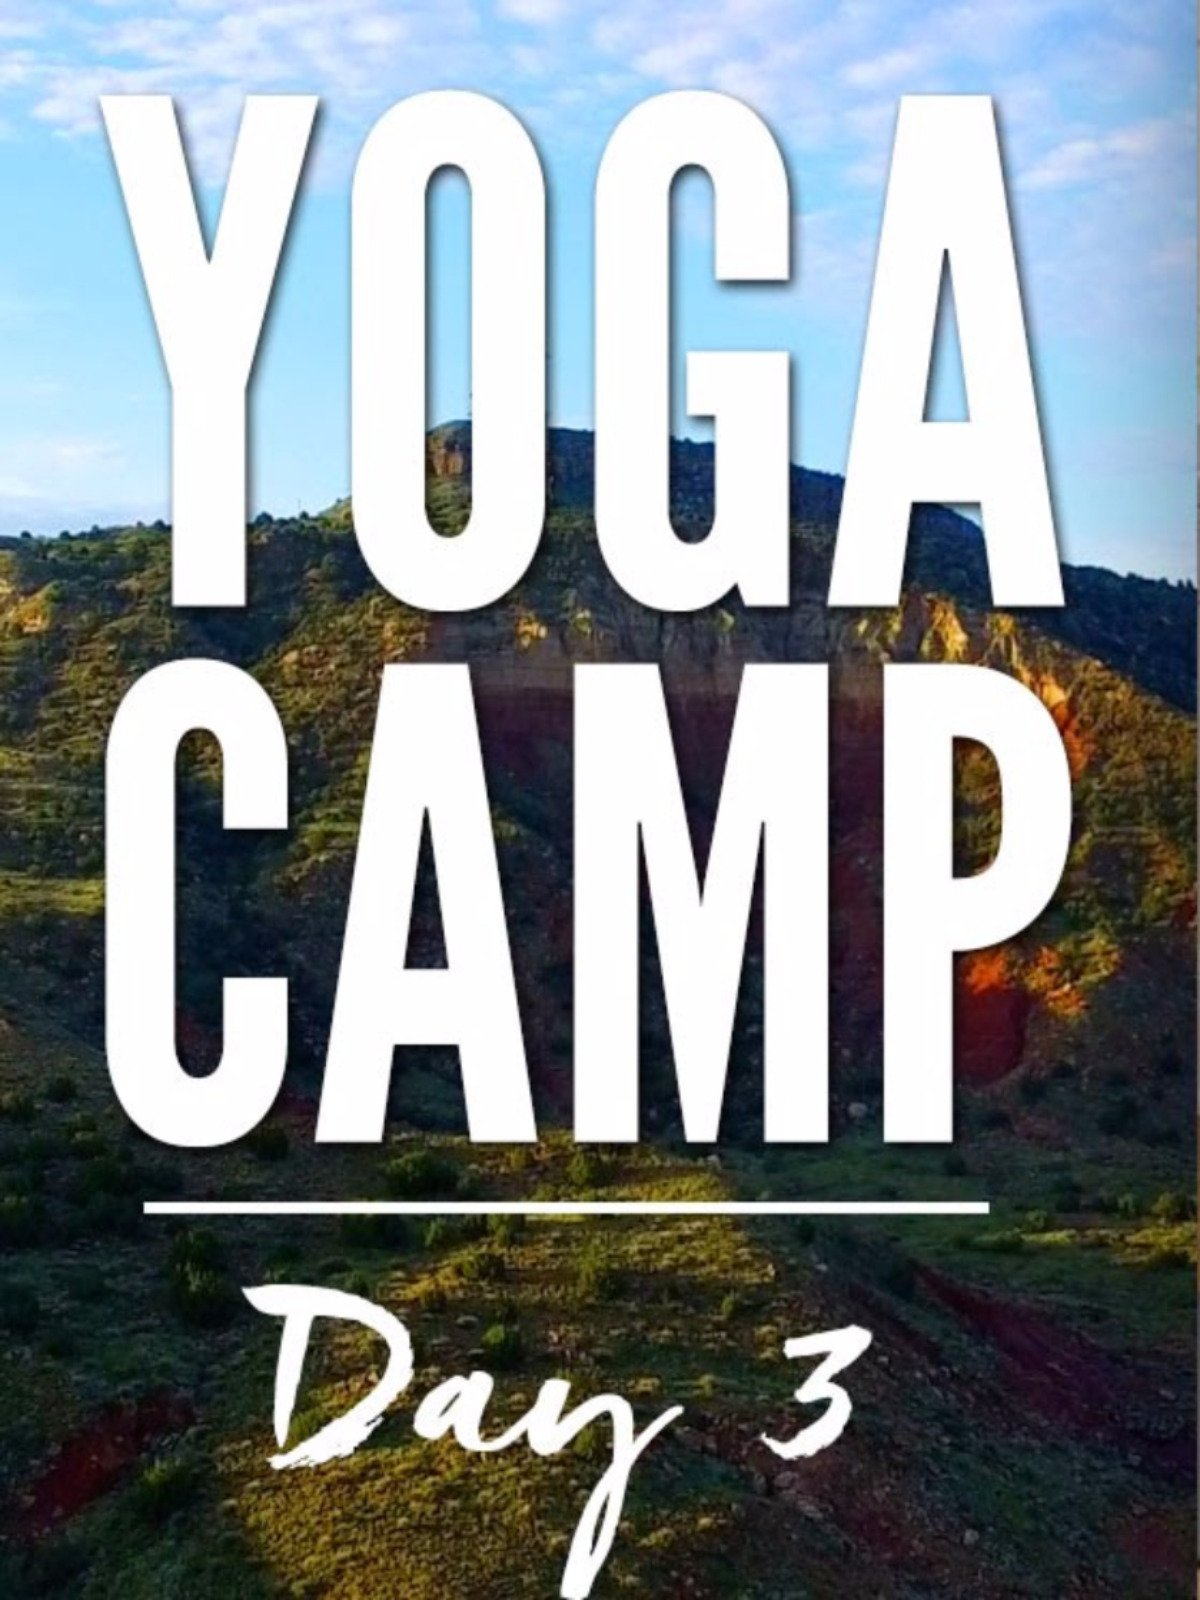 Yoga Camp Day 3